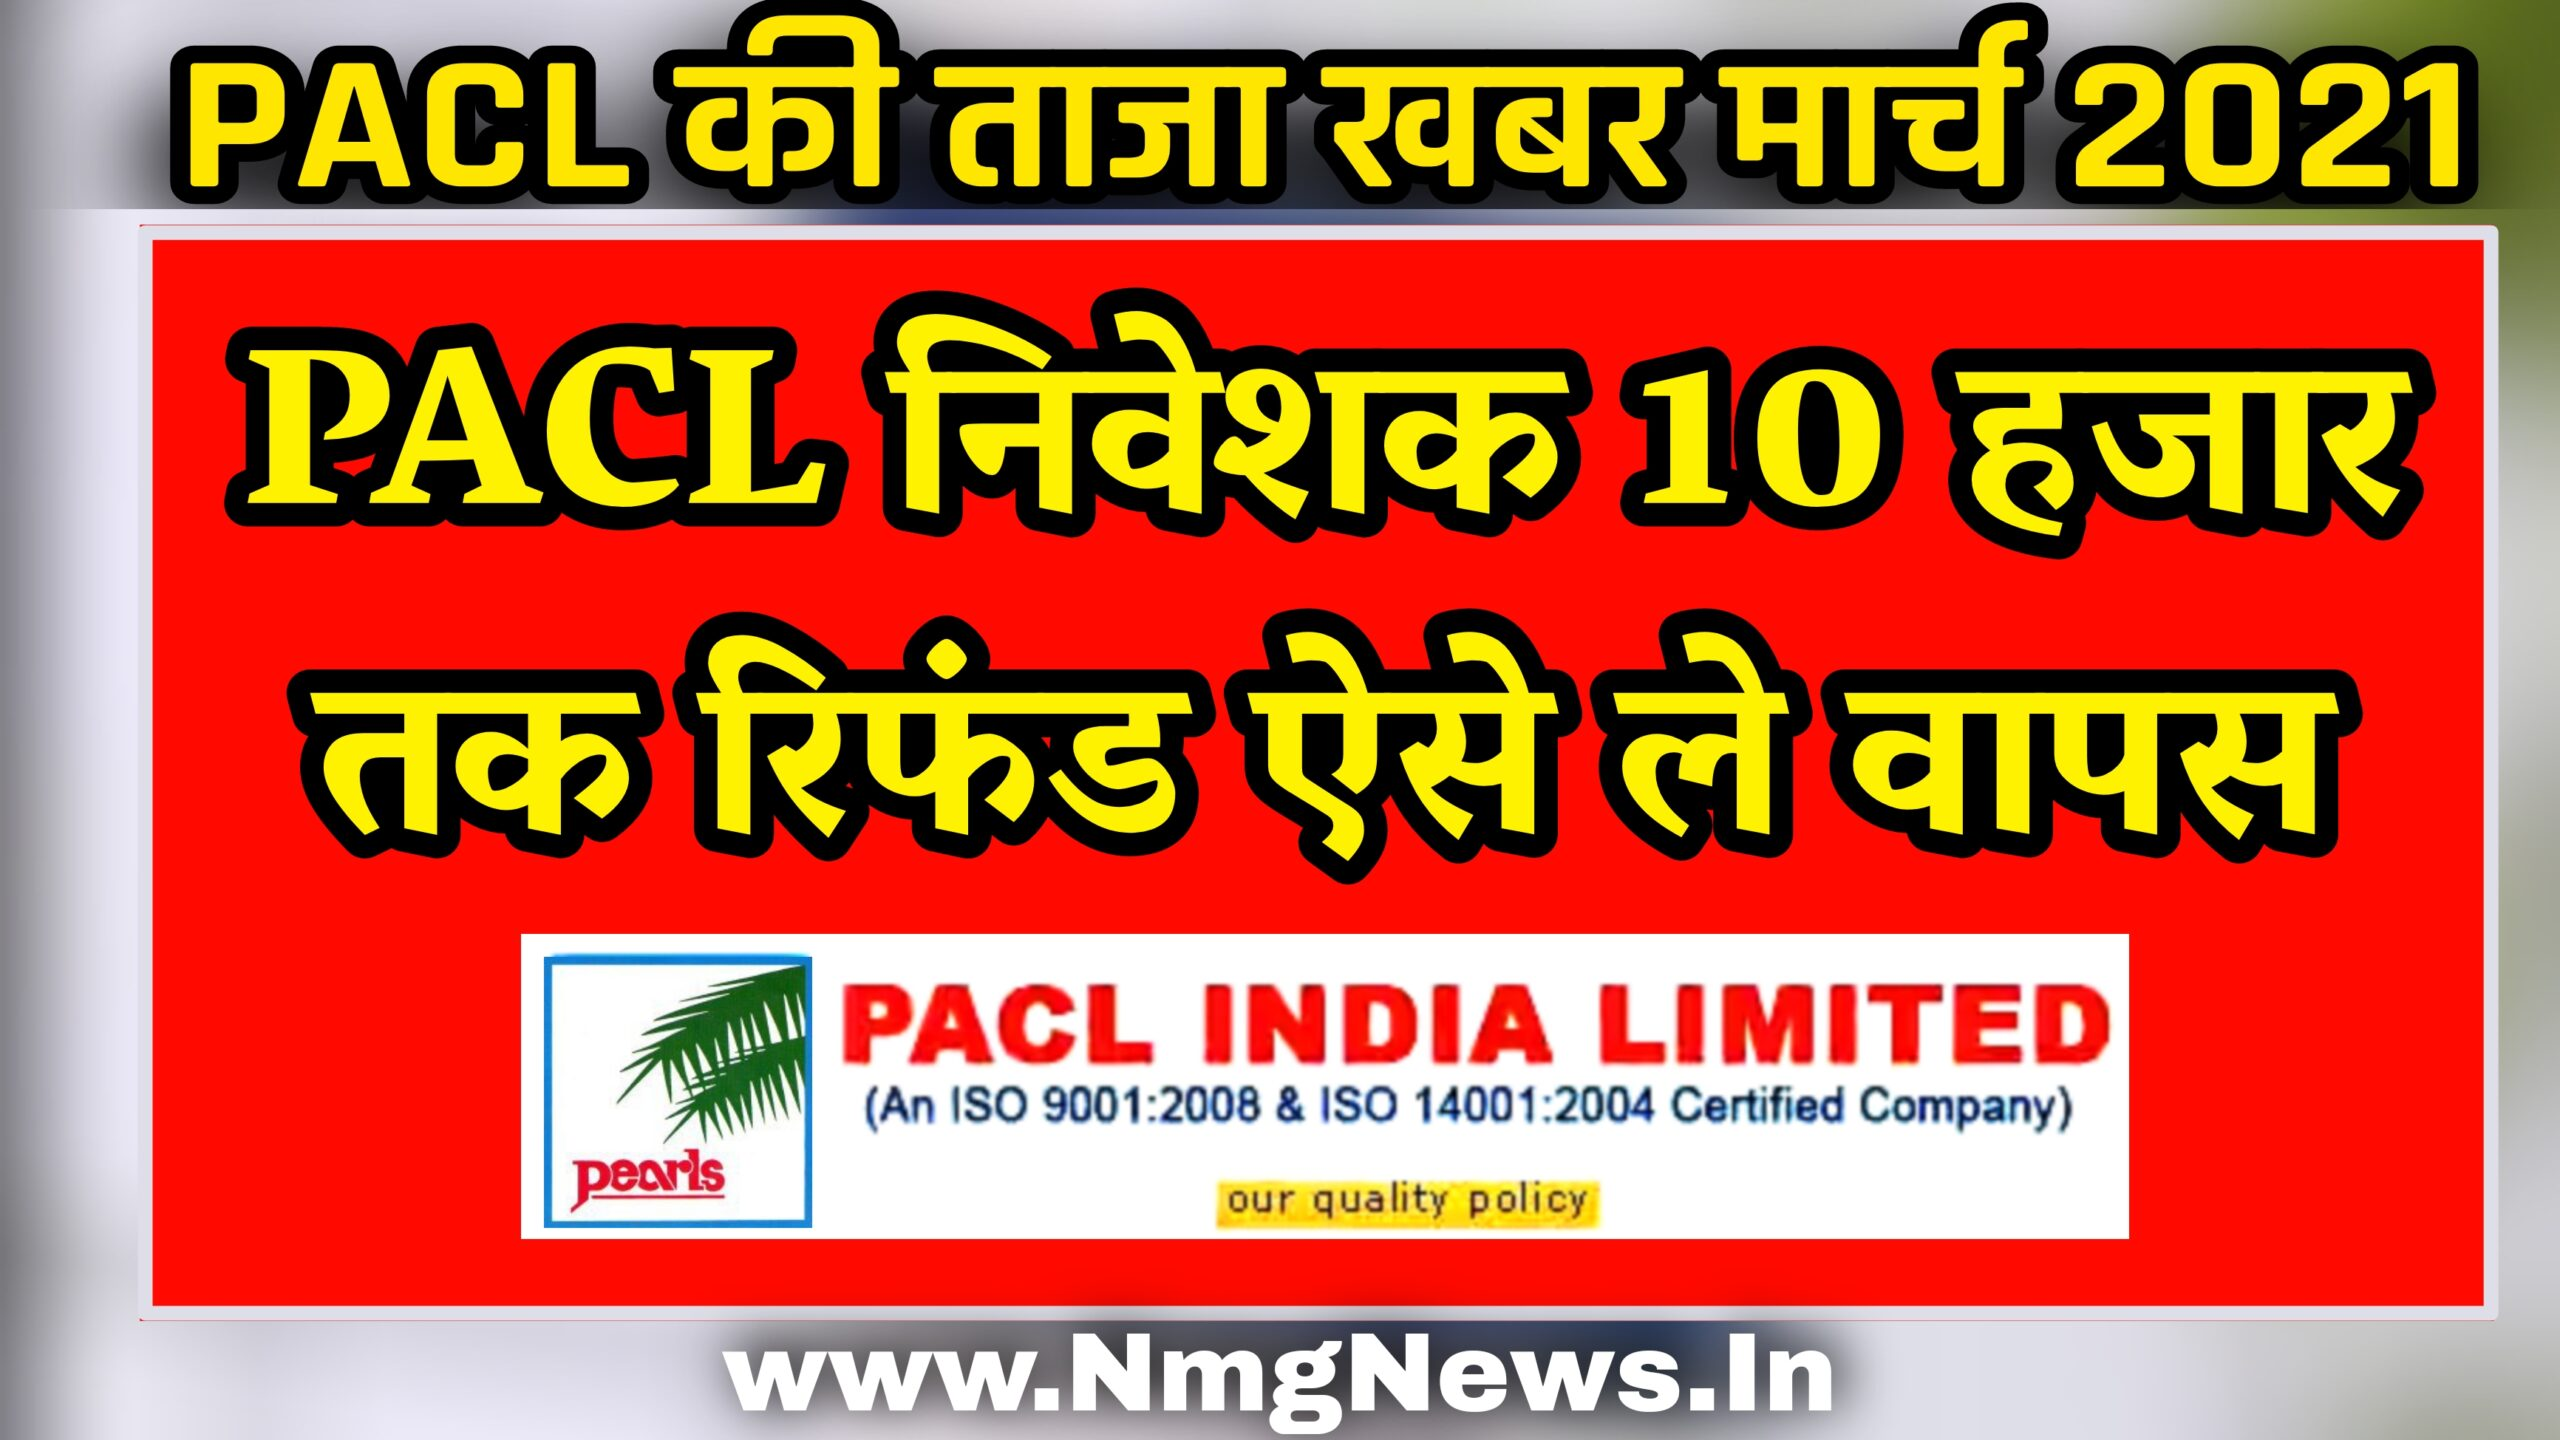 PACL News In Hindi